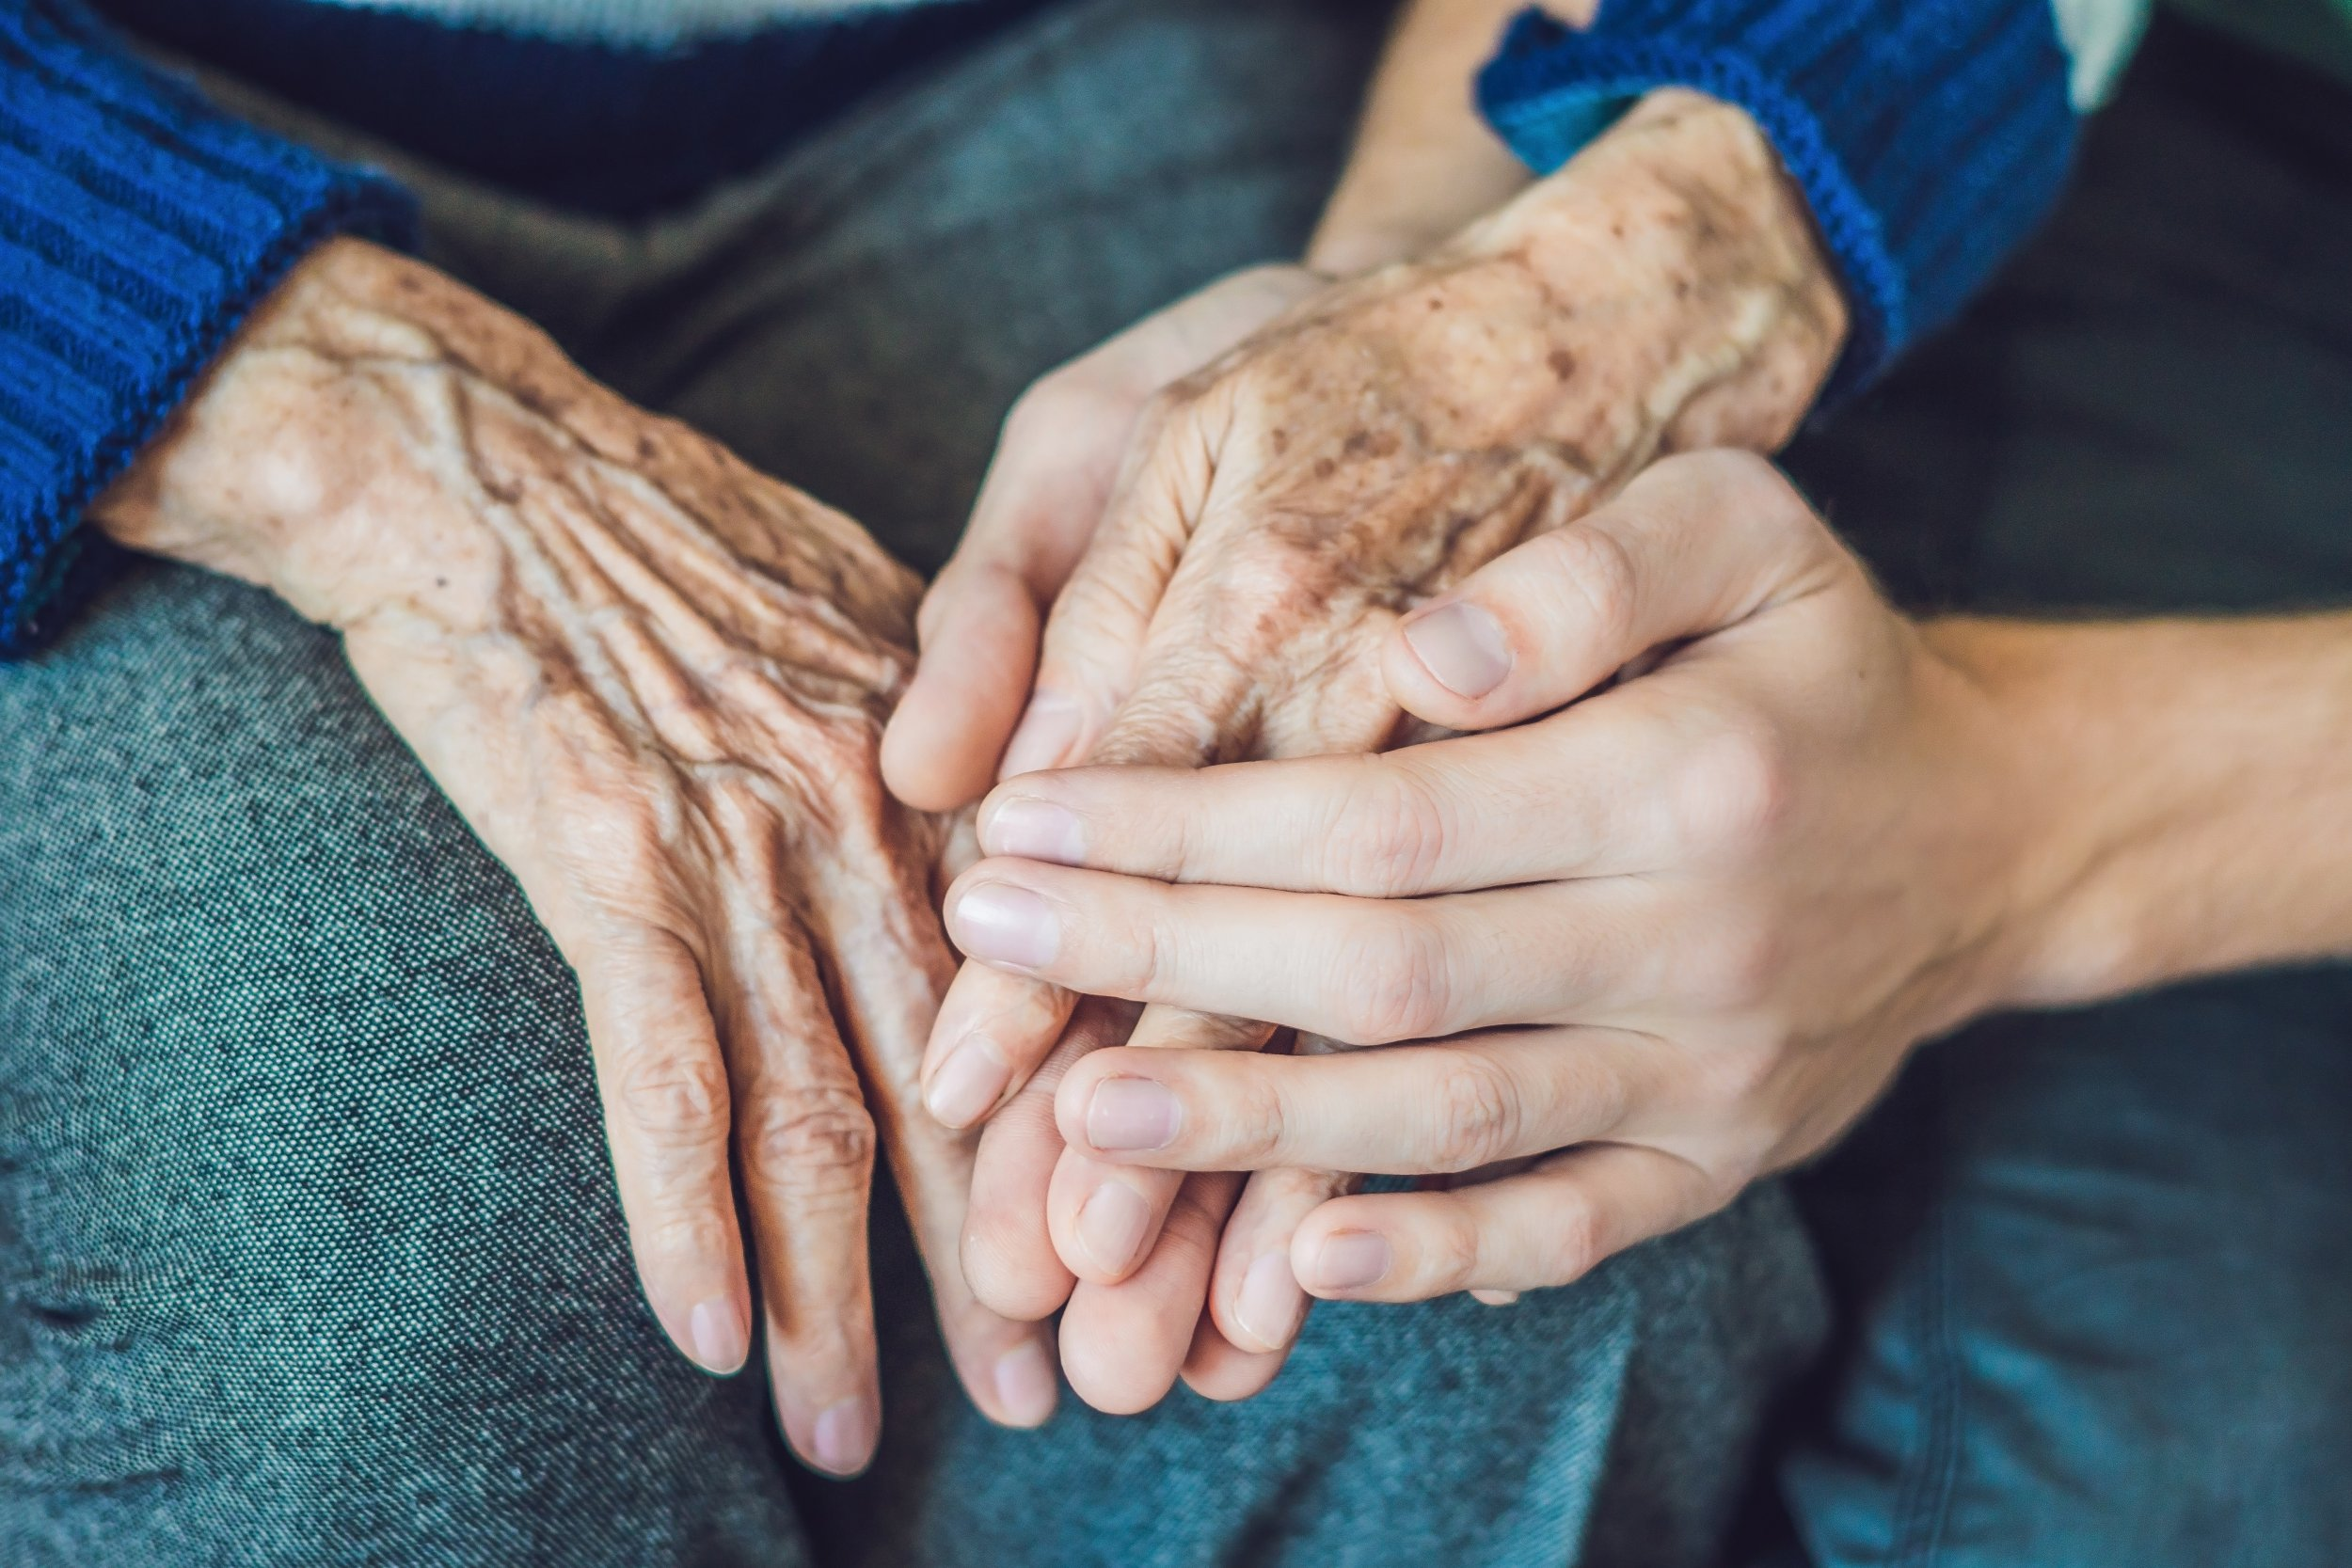 age old hands carestock getty images